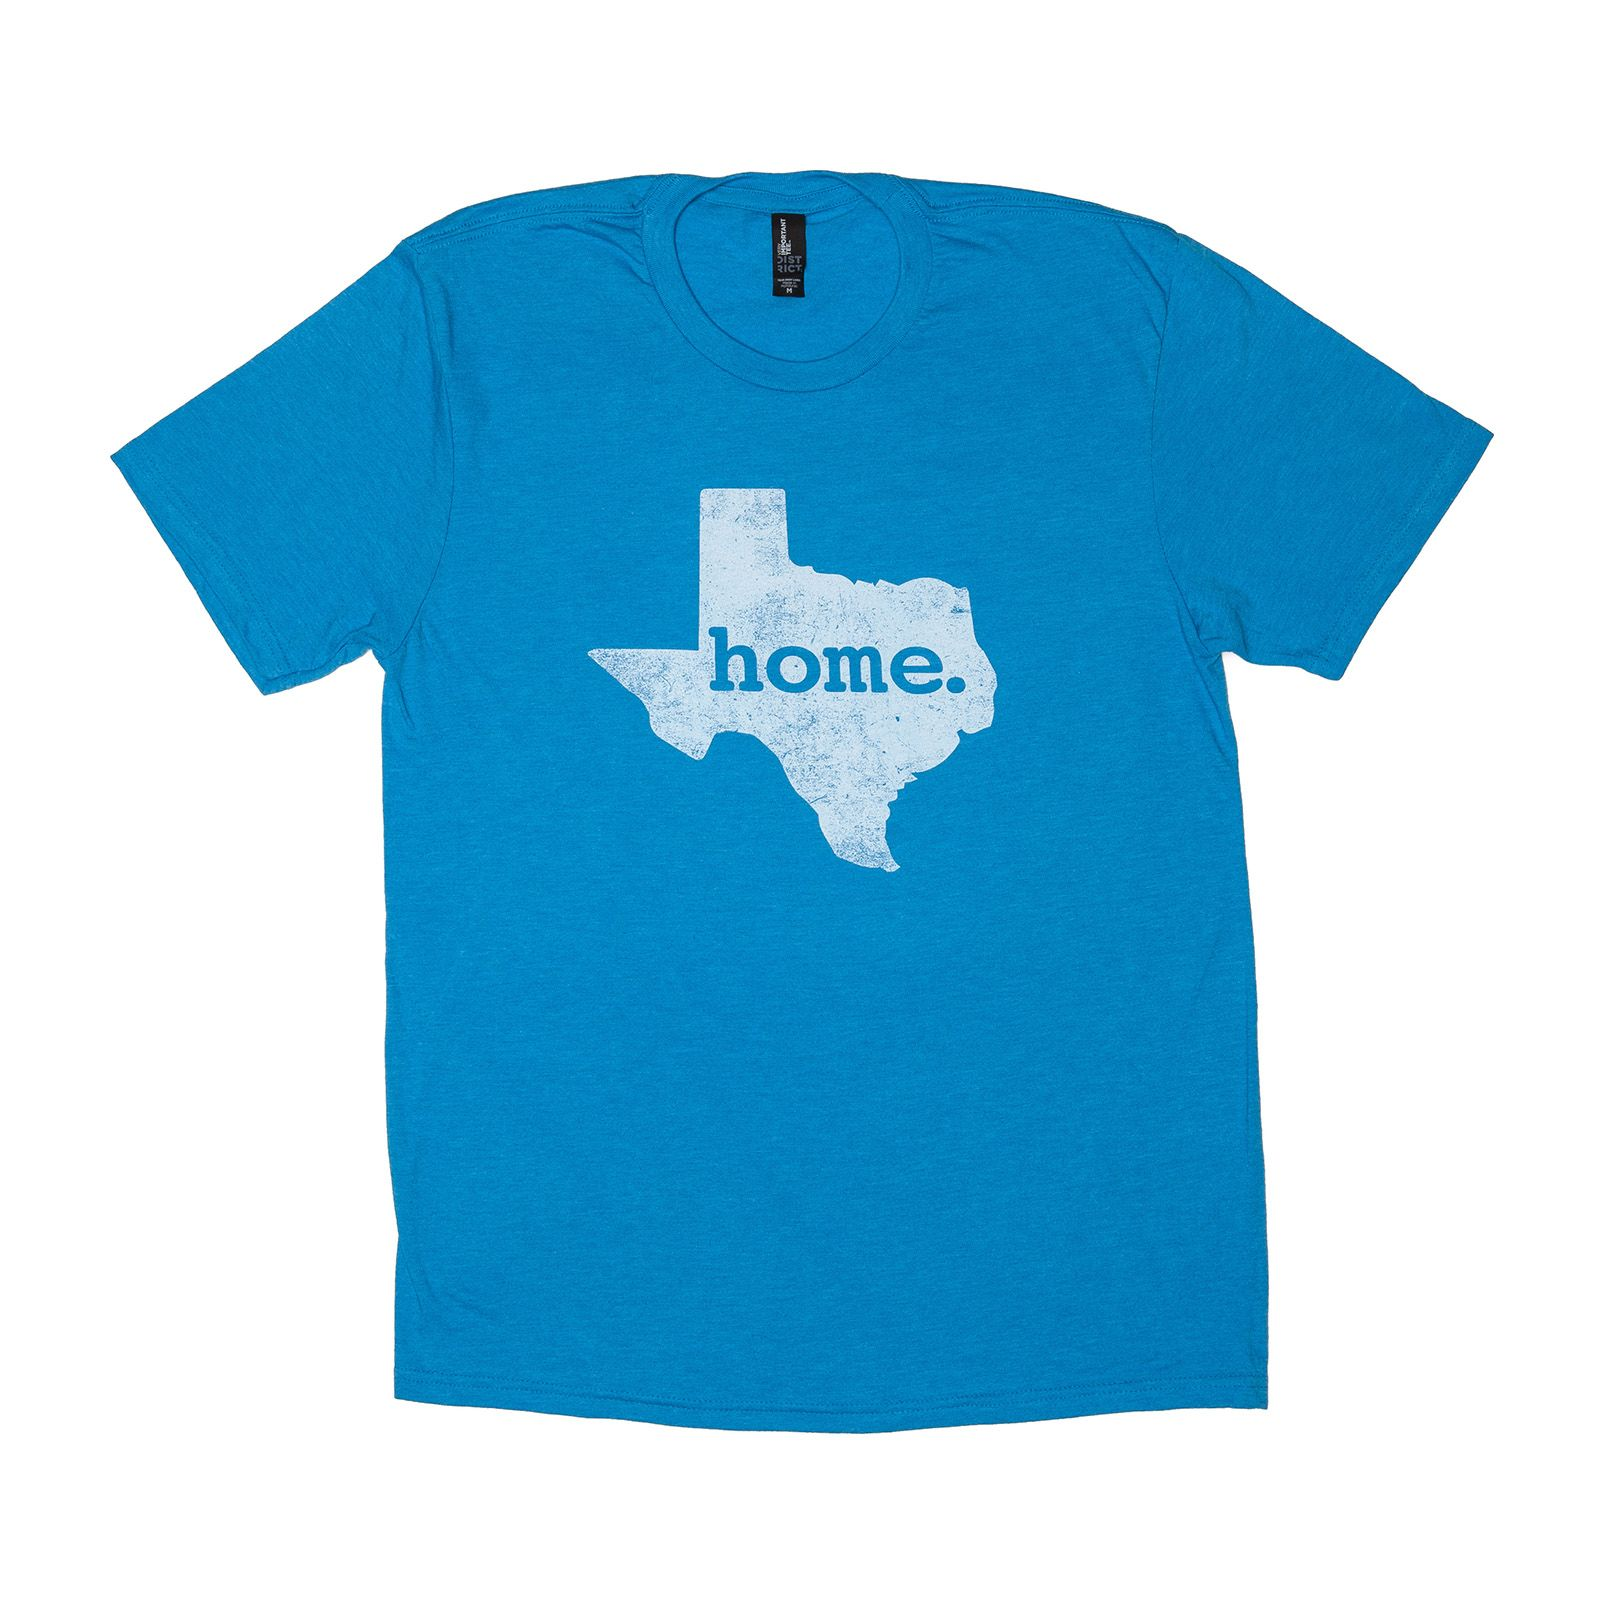 Home Texas Turquoise T-Shirt